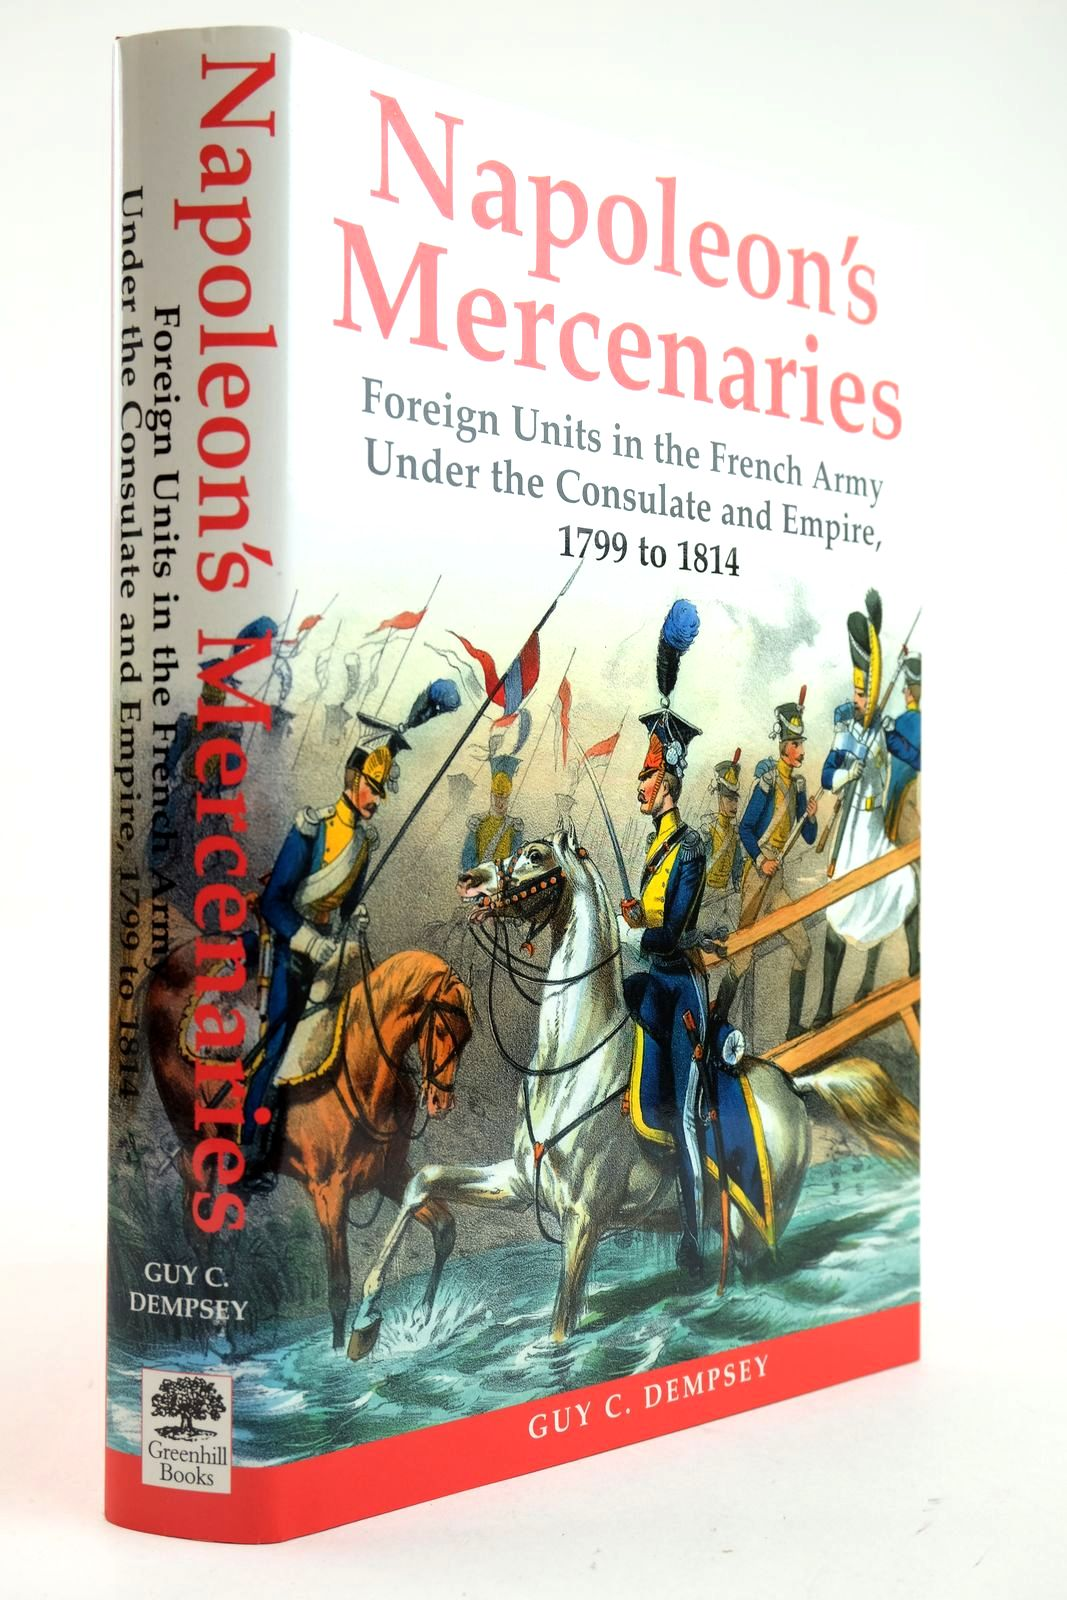 Photo of NAPOLEON'S MERCENARIES written by Dempsey, Guy C. published by Greenhill Books (STOCK CODE: 2132898)  for sale by Stella & Rose's Books